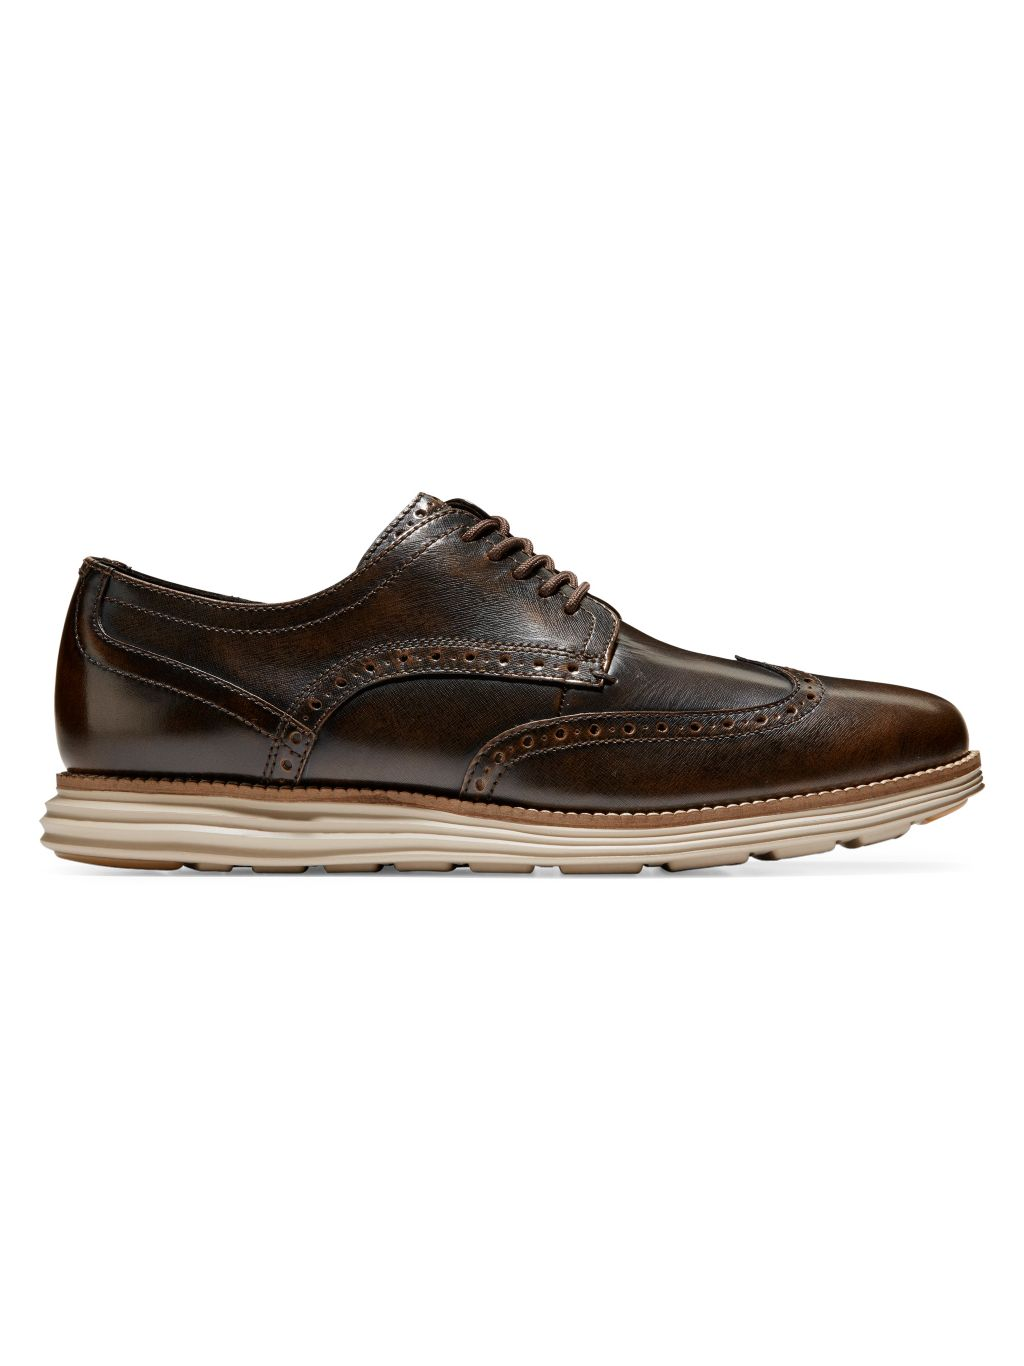 Cole Haan Original Grand Shortwing Oxfords